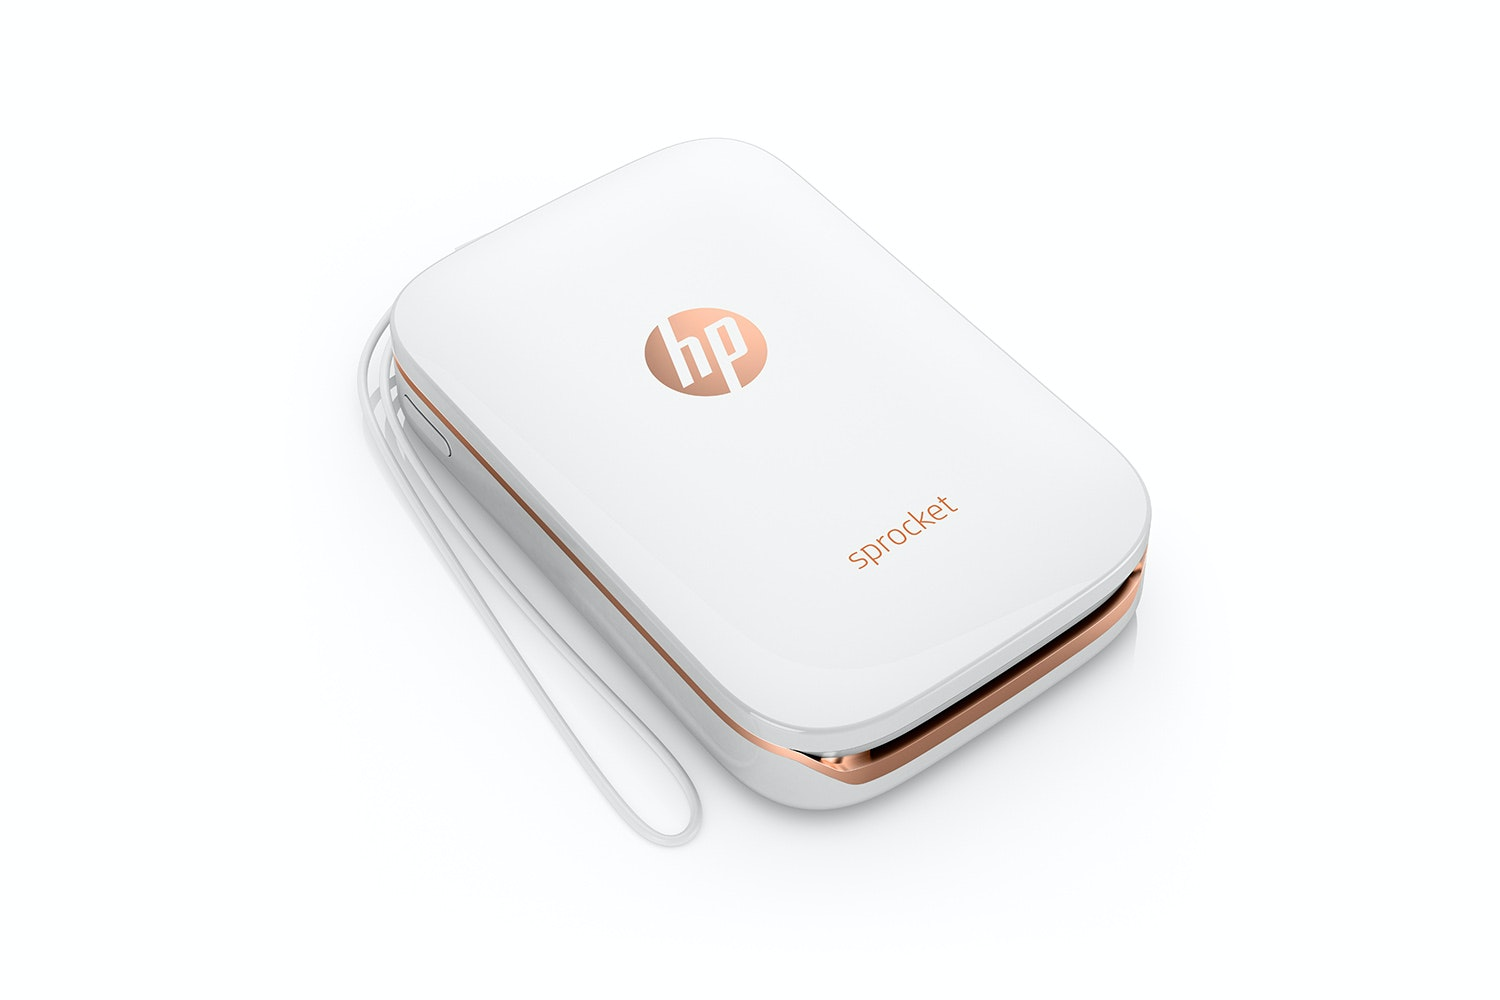 HP Sprocket Photo Printer | White